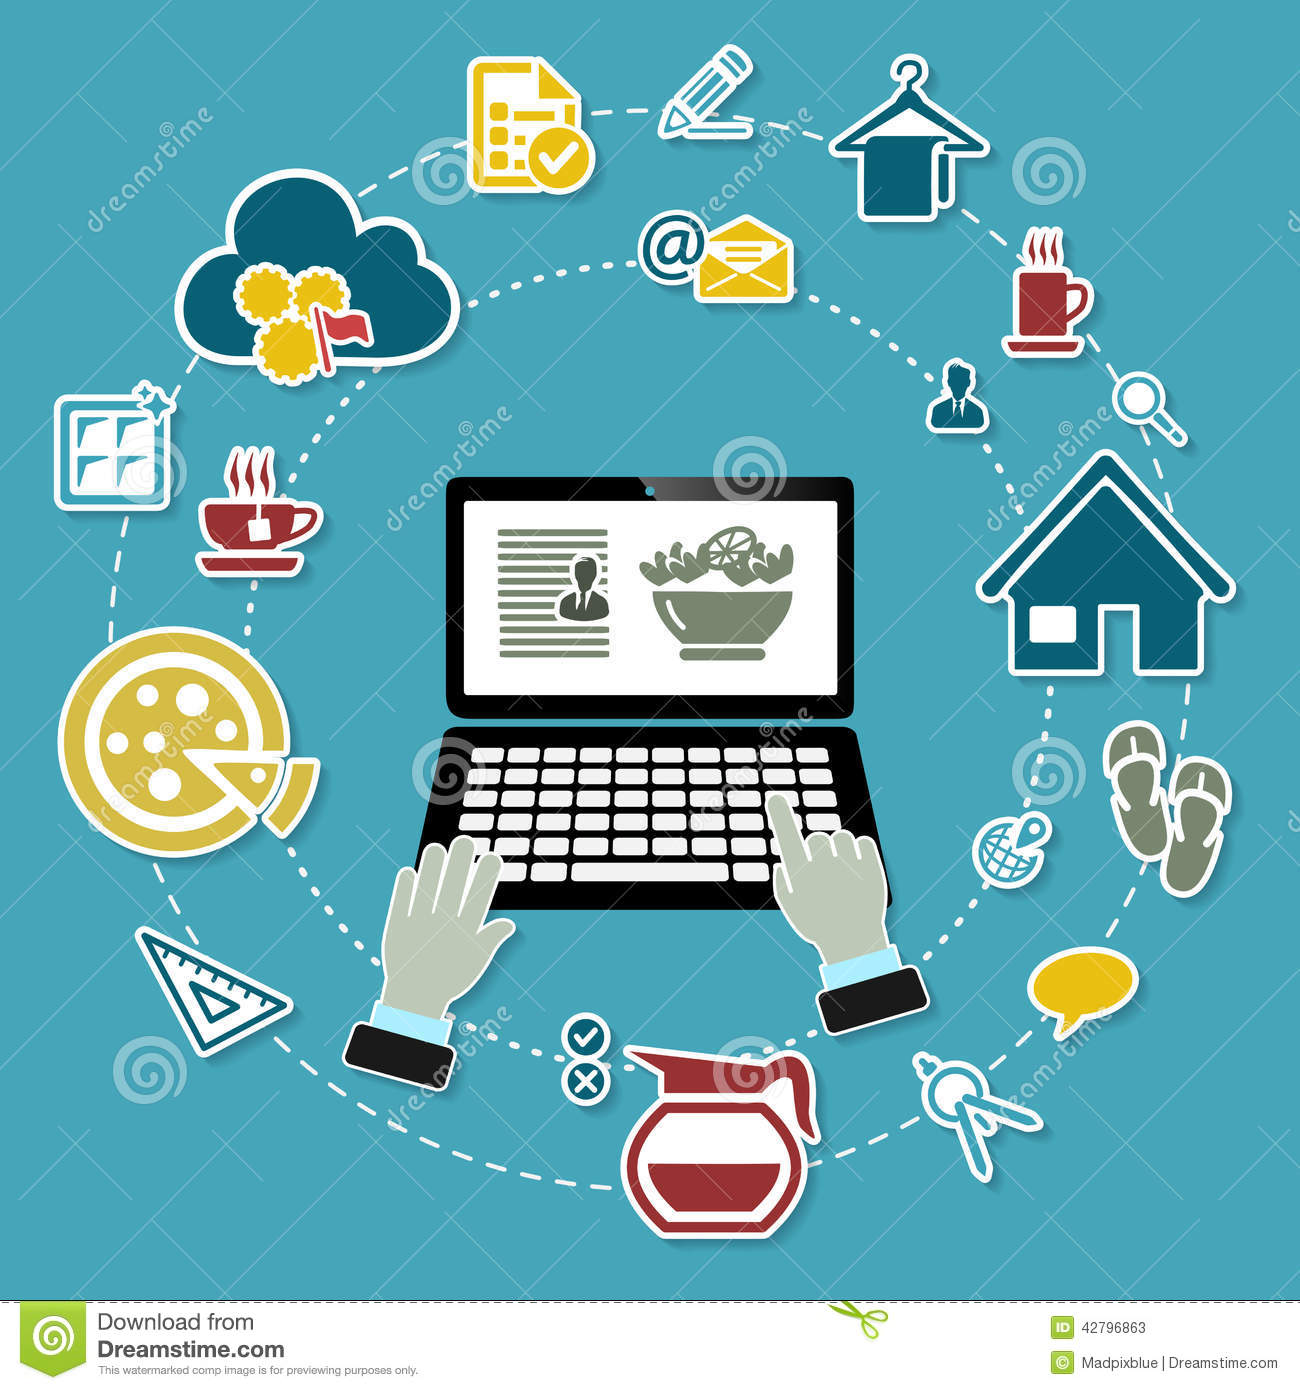 work from home concept illustration with working laptop and icons on